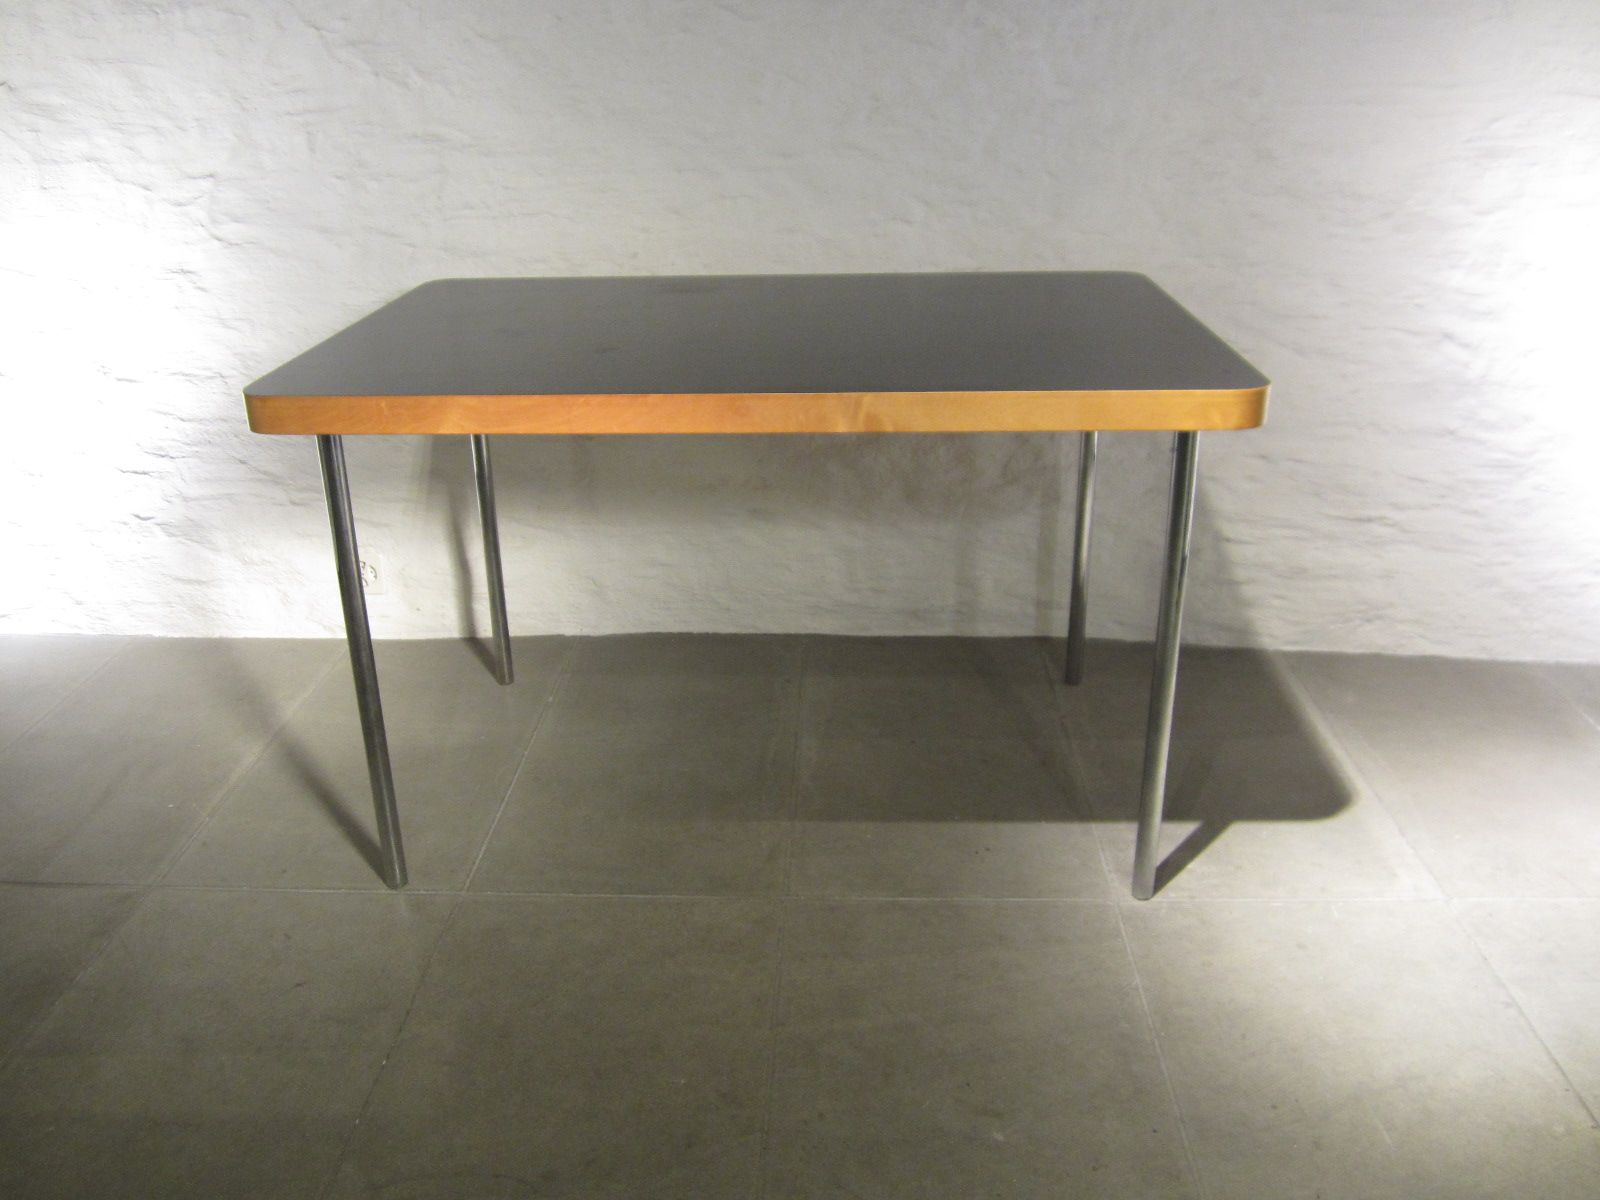 Small Vintage Dining Table By Marcel Breuer For Embru Wohnbedarf 1940s